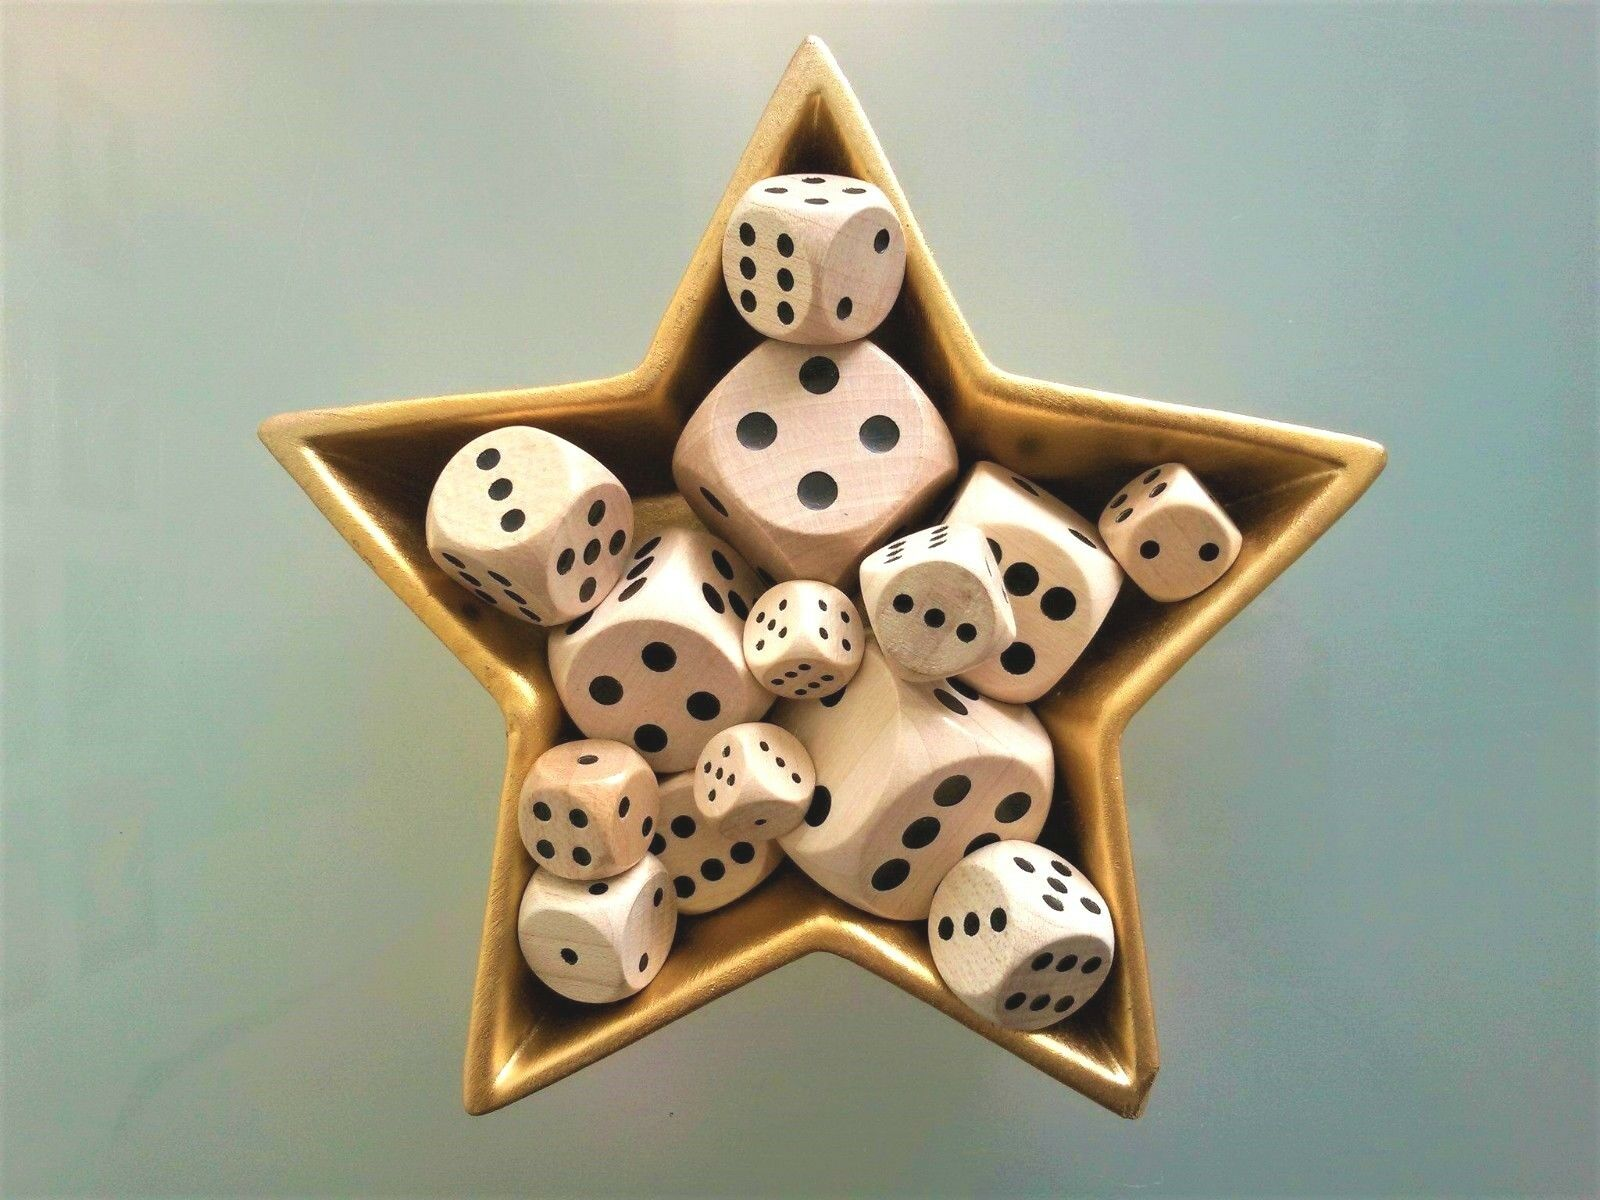 Wooden Dice - Six Sided Spot Dice for Board Games - D6 16mm